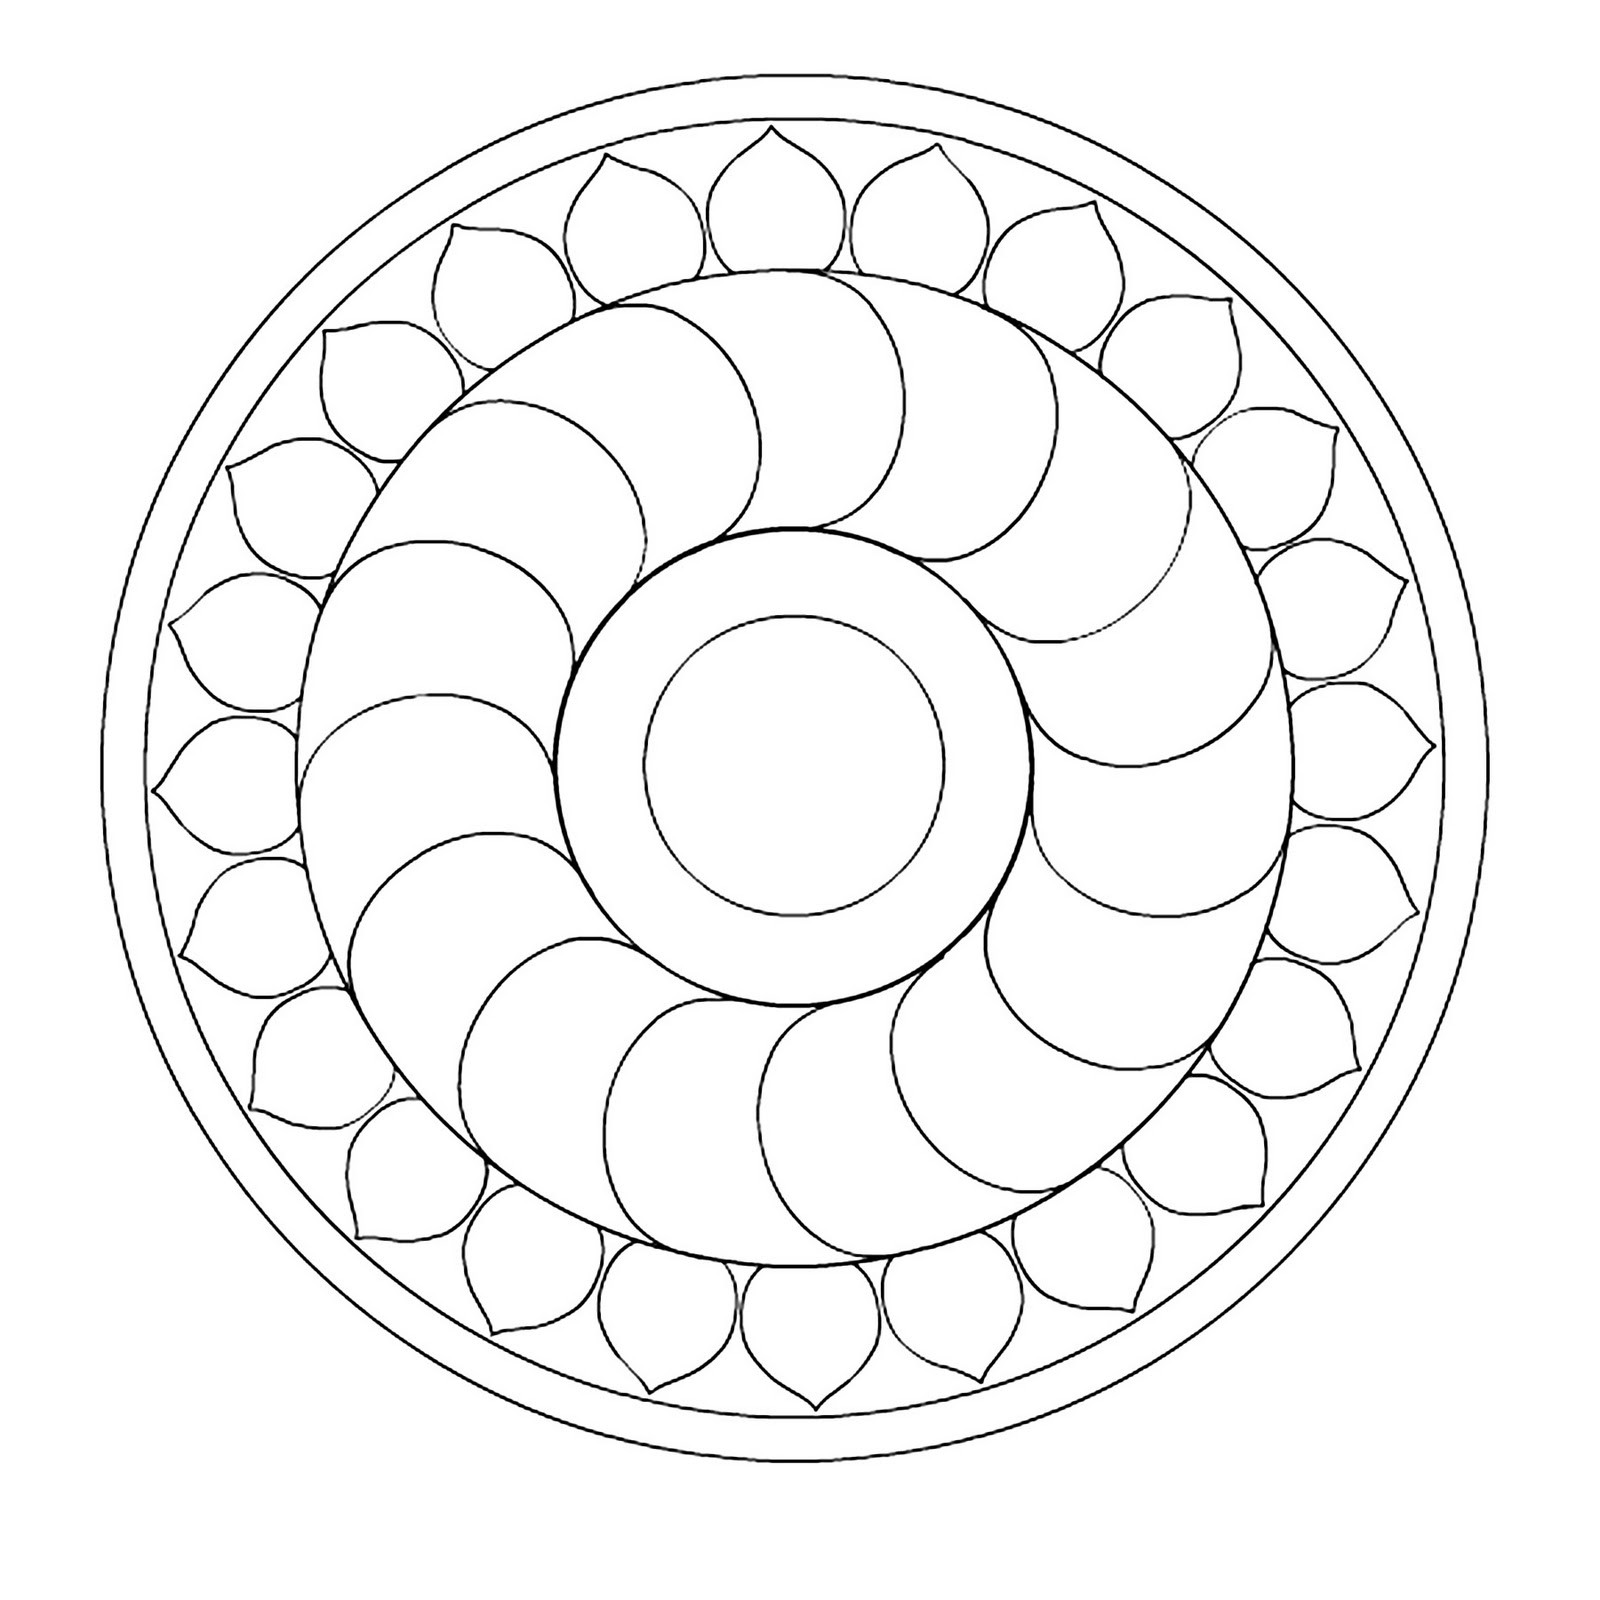 1600x1600 Mandala For Kids Free Draw To Color